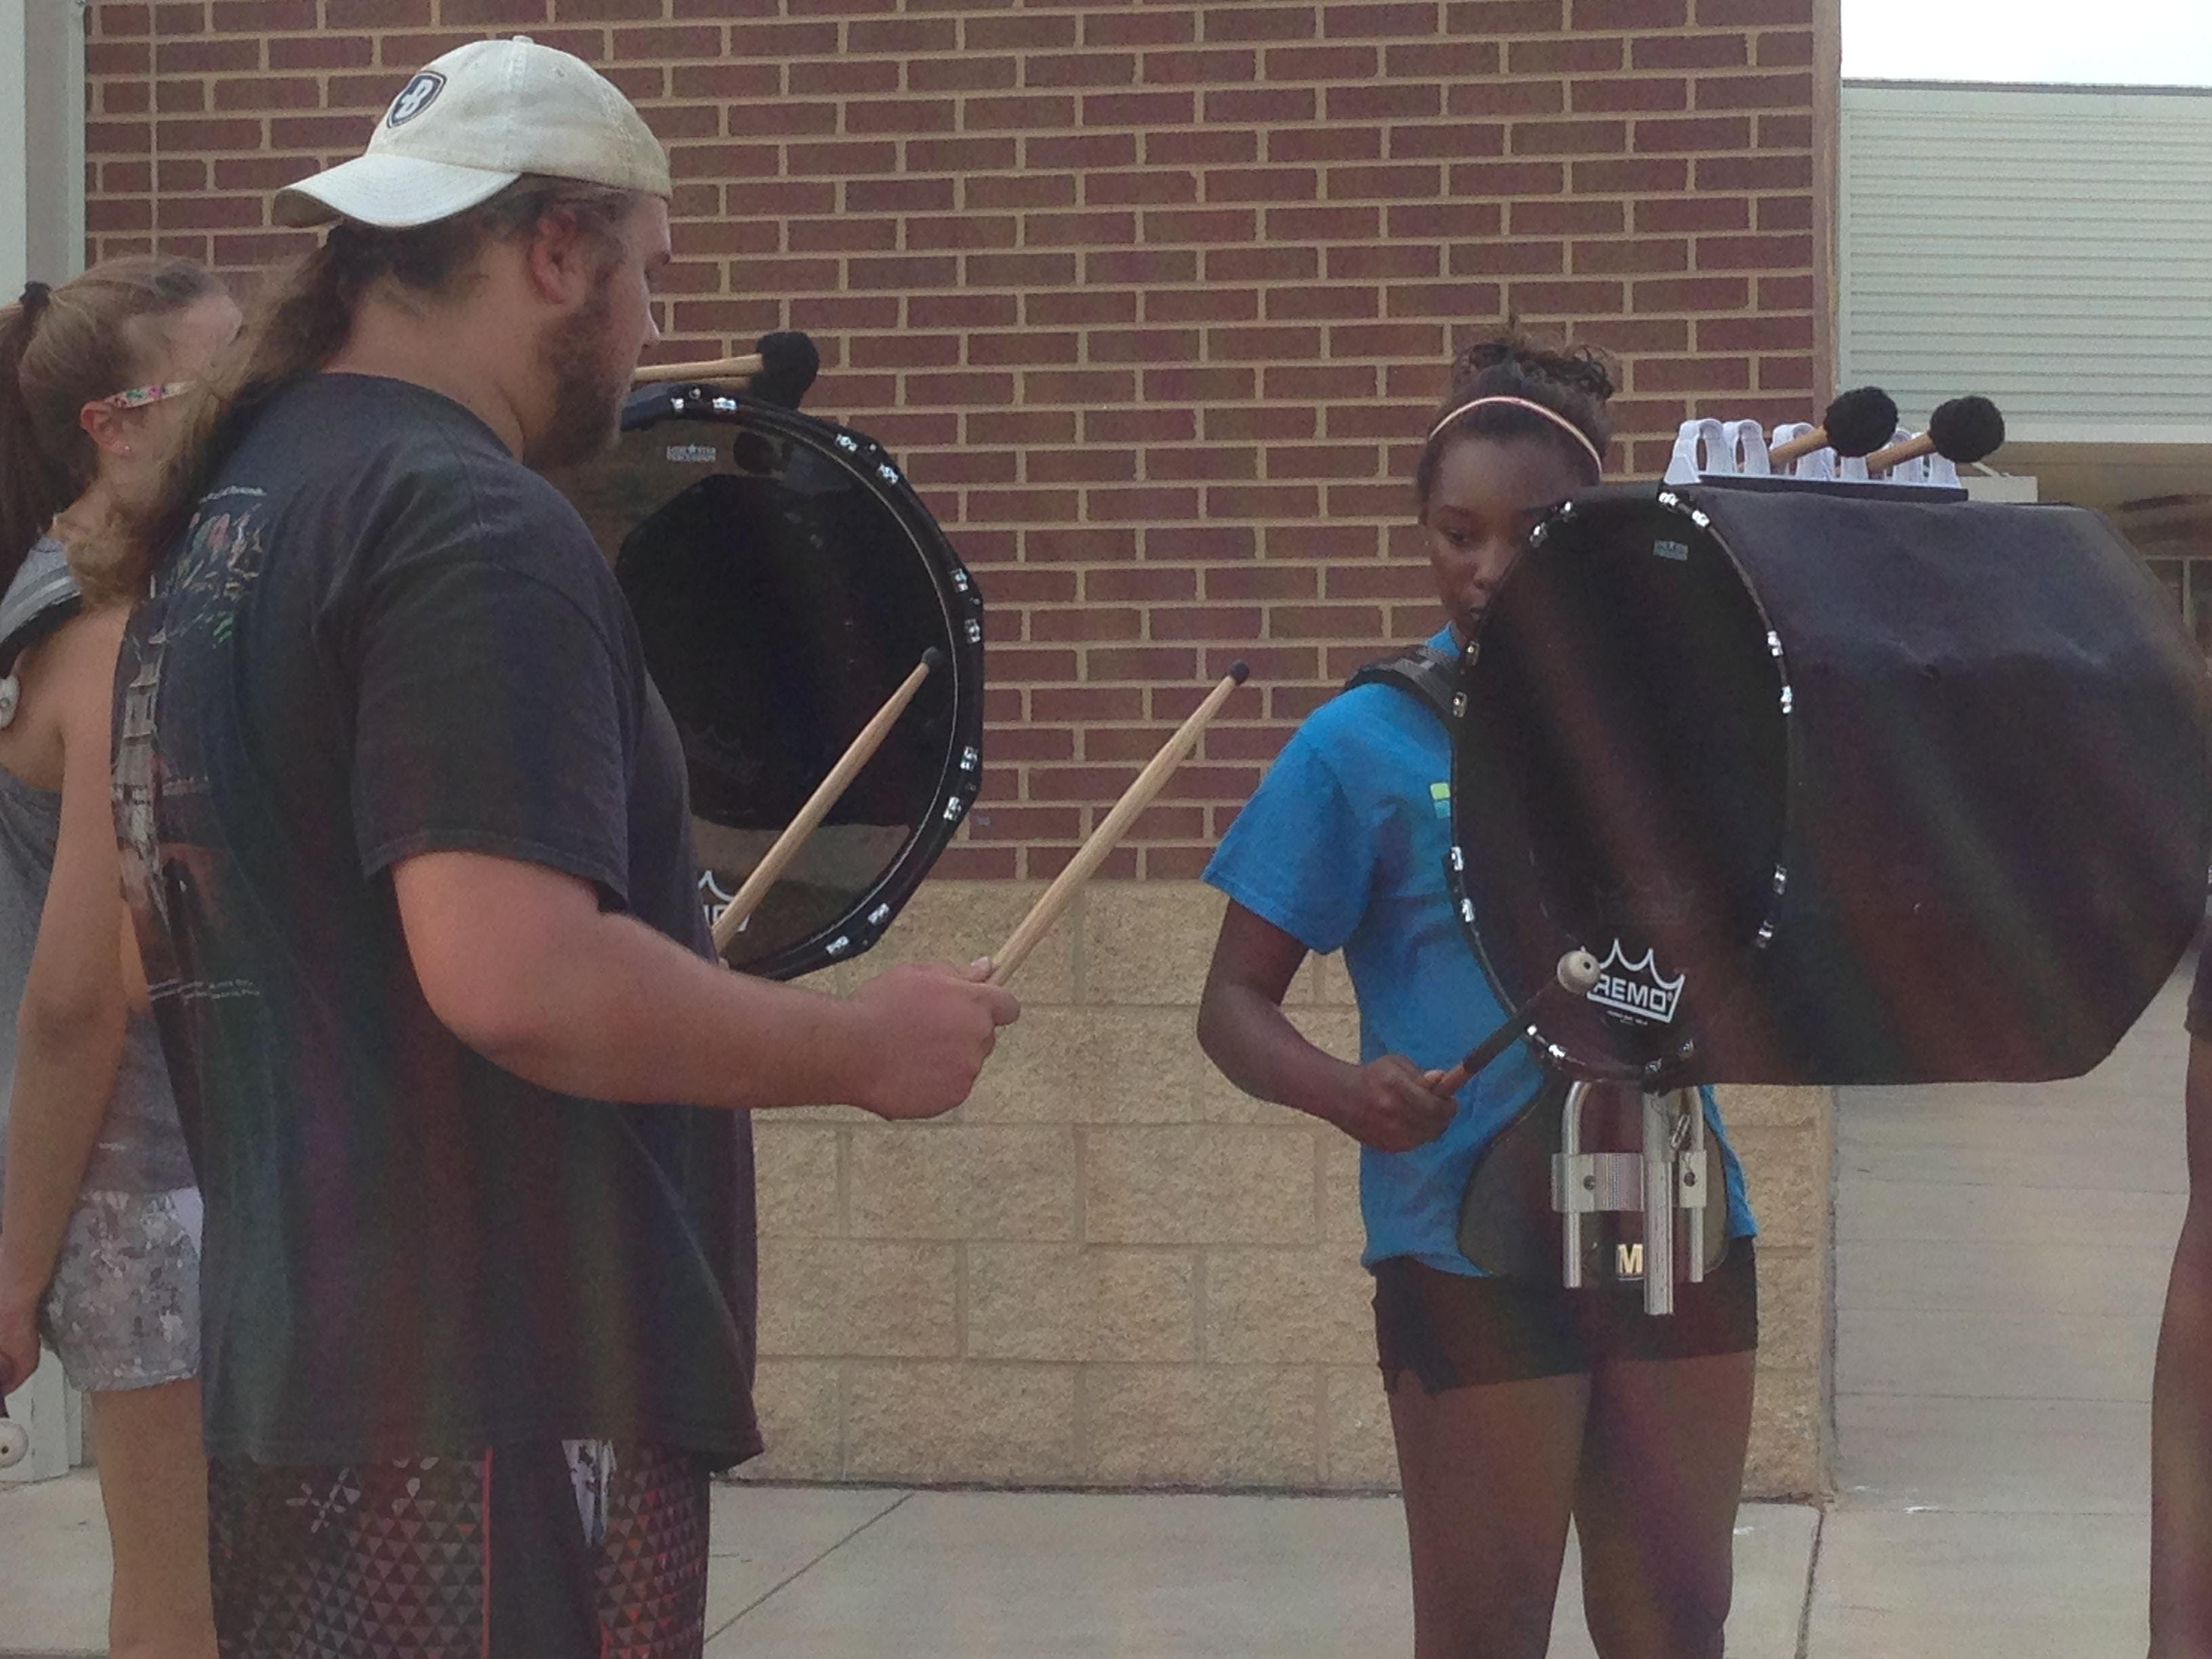 Students rehearse at Parkway High School in Bossier City.